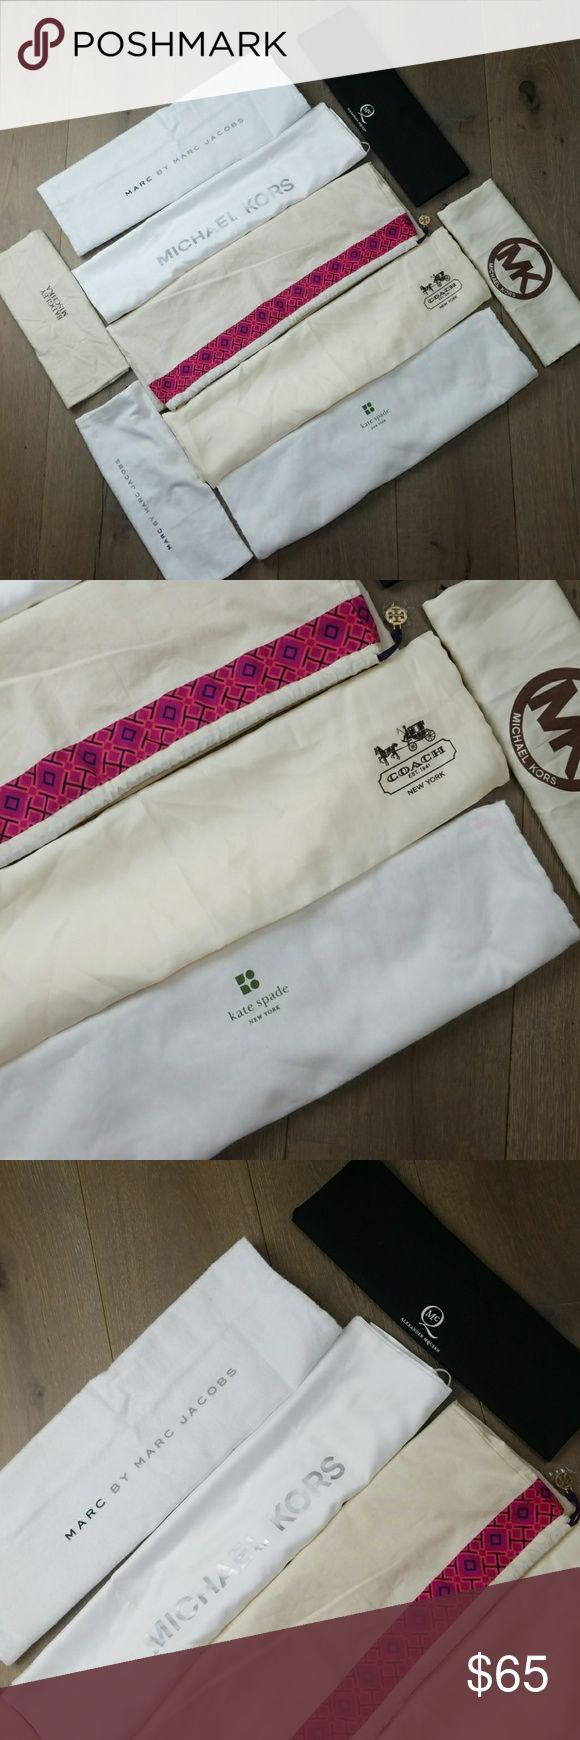 Bundle of 9 authentic dust bags brand names Brand names selling all as a bundle great deal. Michael Kors Bags